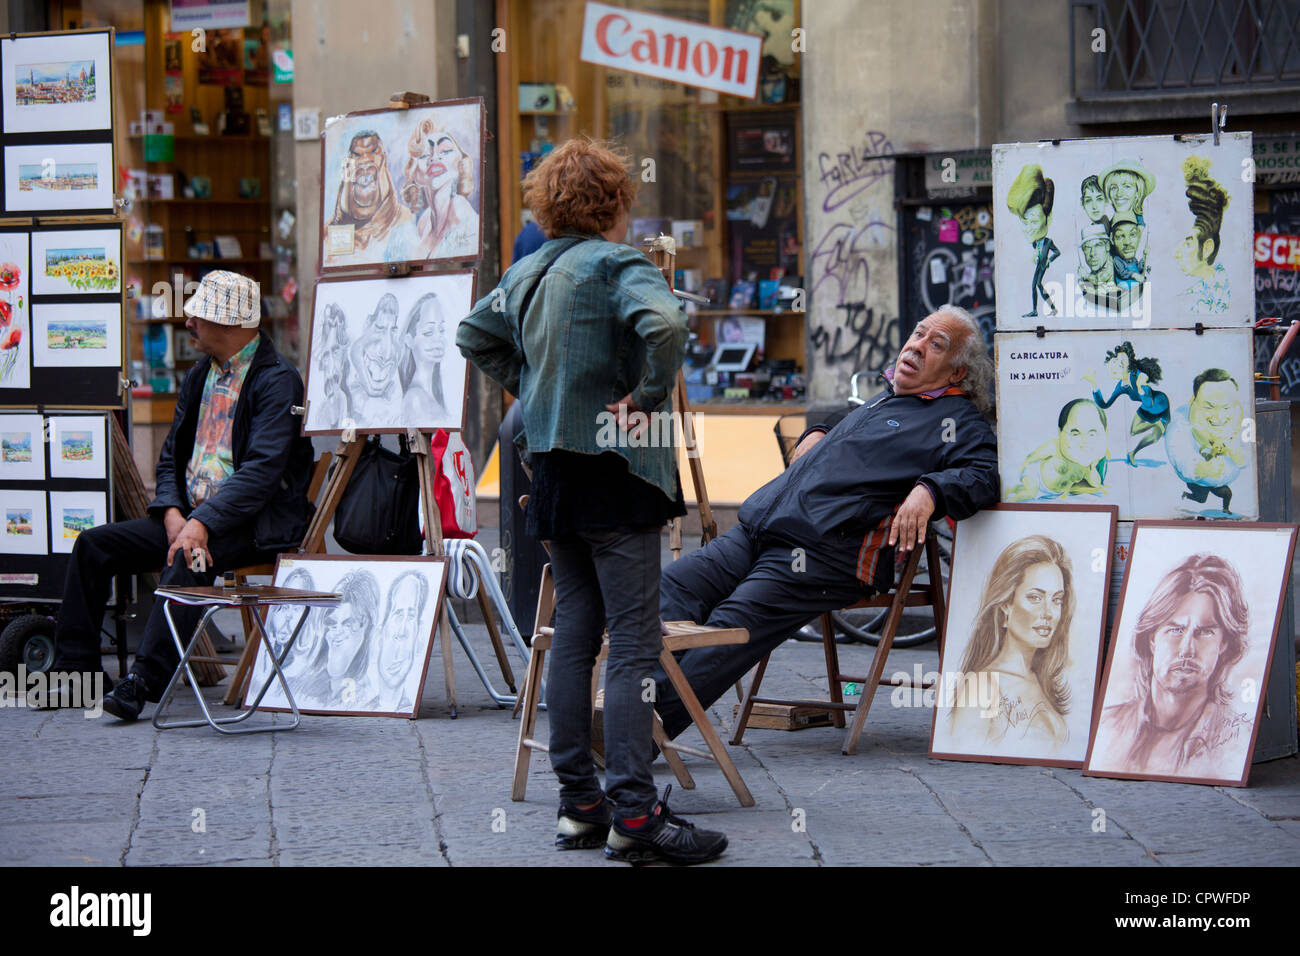 Pavement artists and souvenir stalls in Piazza di San Giovanni, Italy - Stock Image